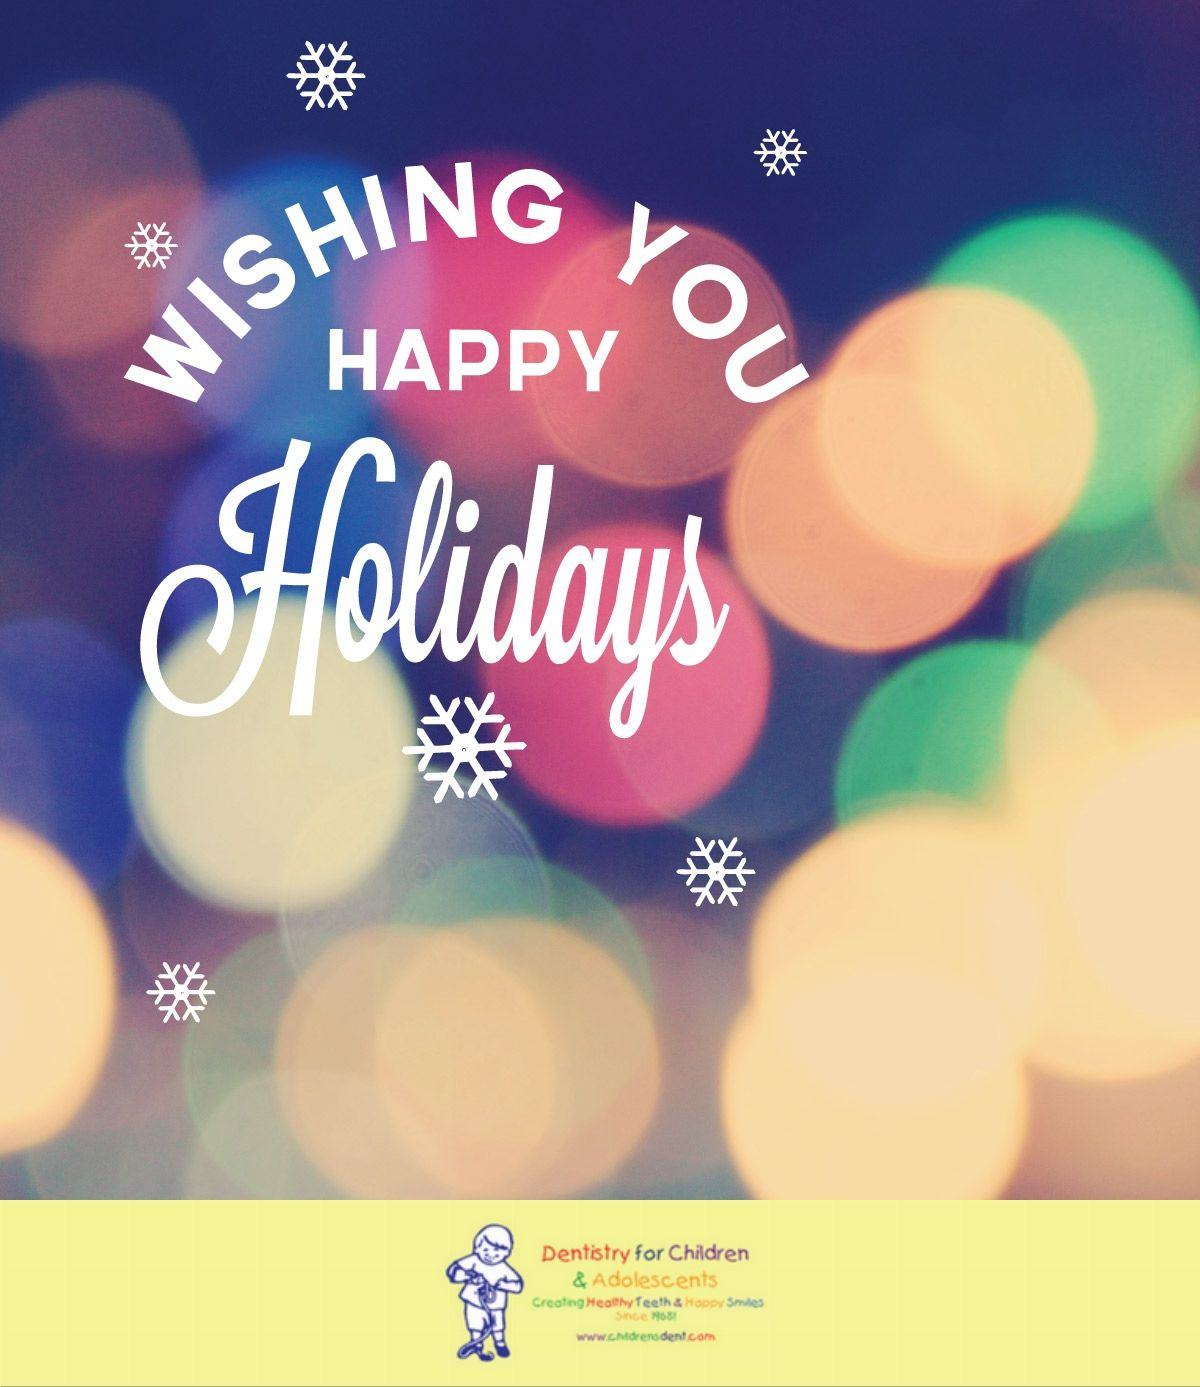 HAPPY HOLIDAYS from us to you! We are closed today~ if your child